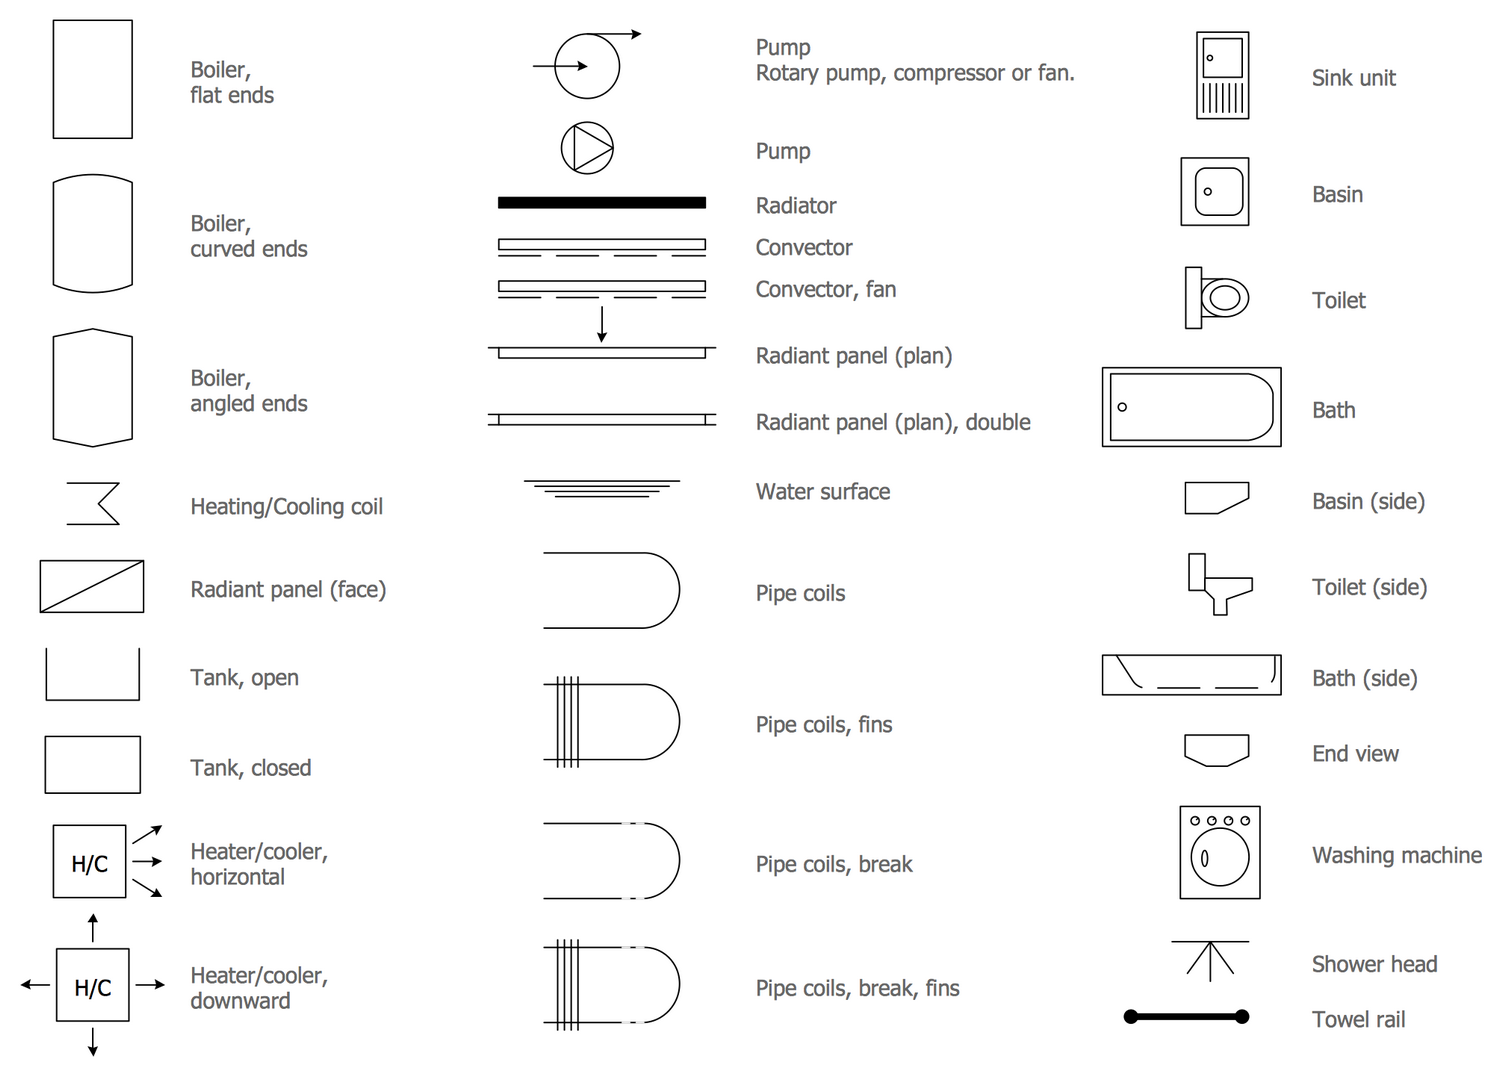 Electrical Symbols For Home Plans House Plans